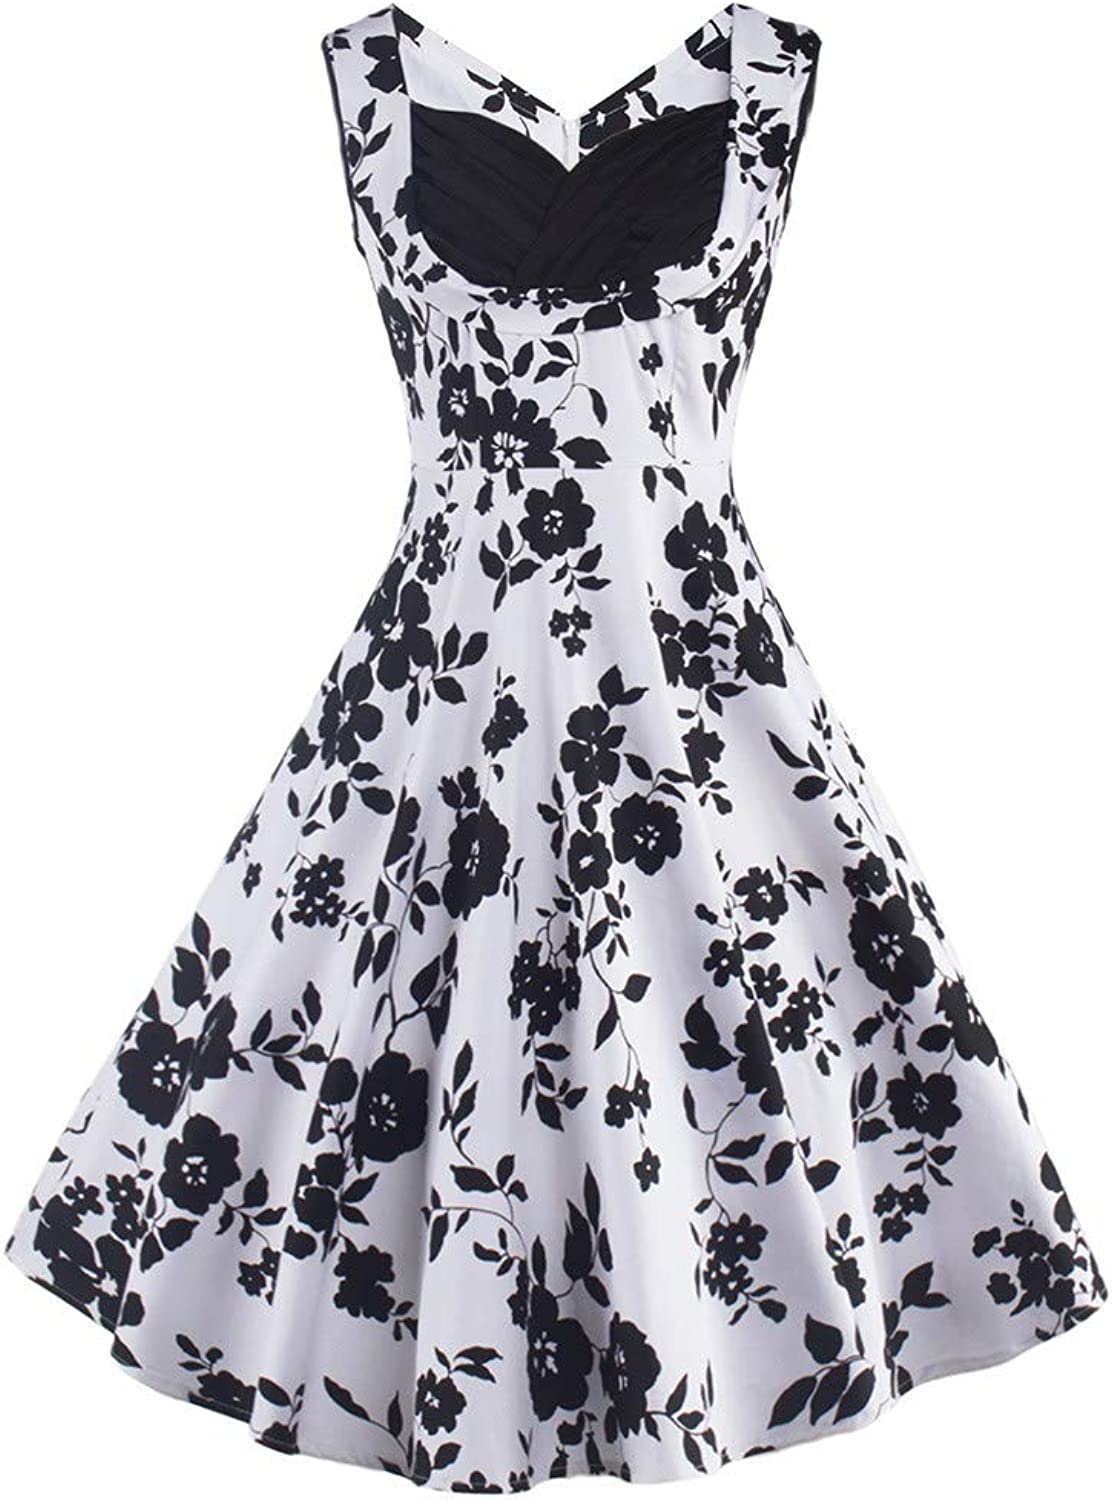 Xinantime Women's 1950s Retro Vintage Cocktail Party Swing Dress Evening Party Ball Mini Dress with Short Sleeve